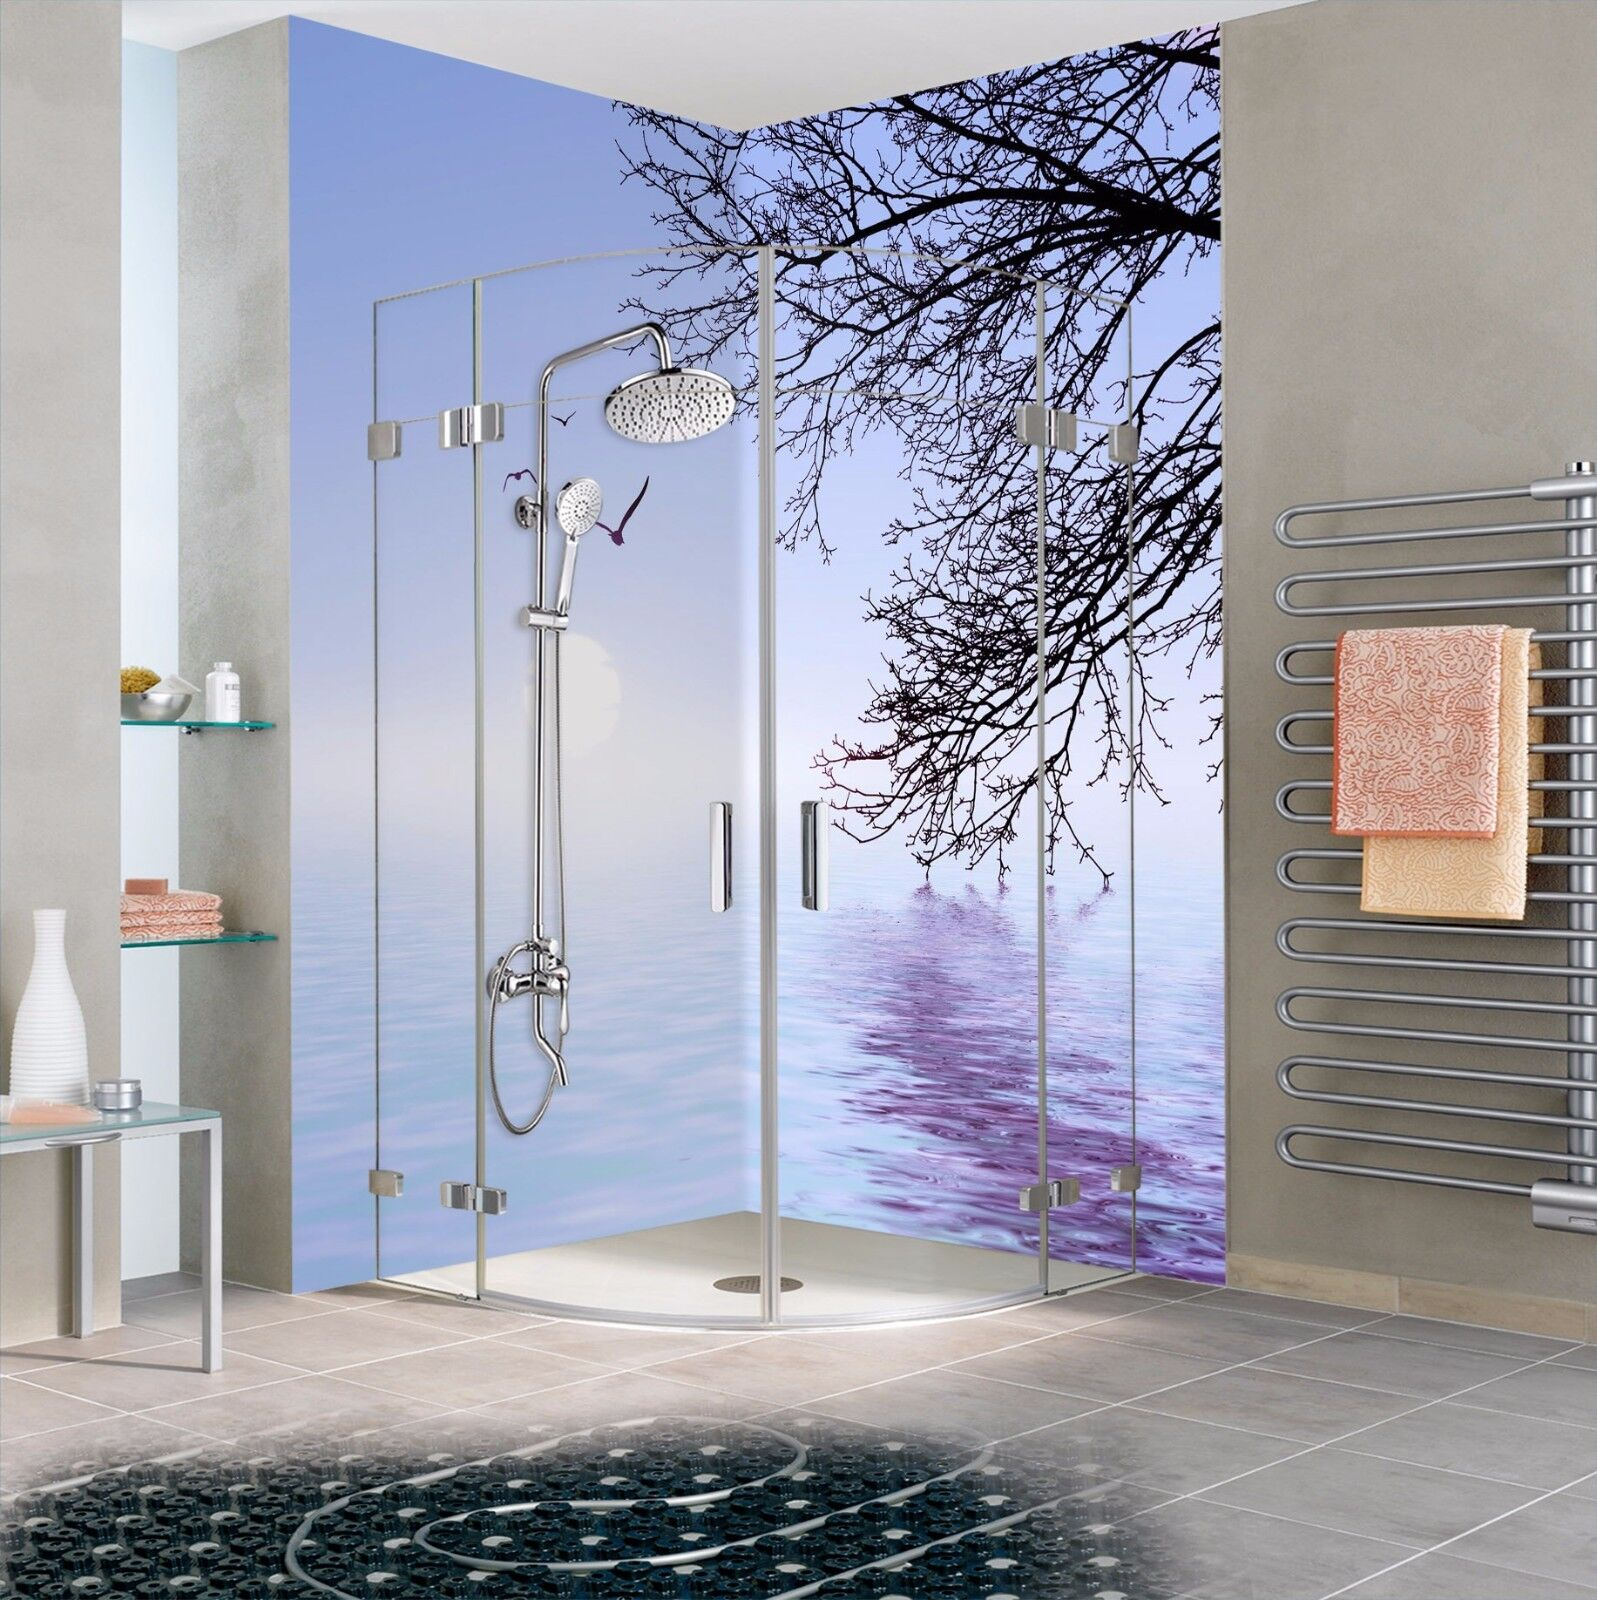 3D Lakes 7110  WallPaper Bathroom Print Decal Wall Deco AJ WALLPAPER AU